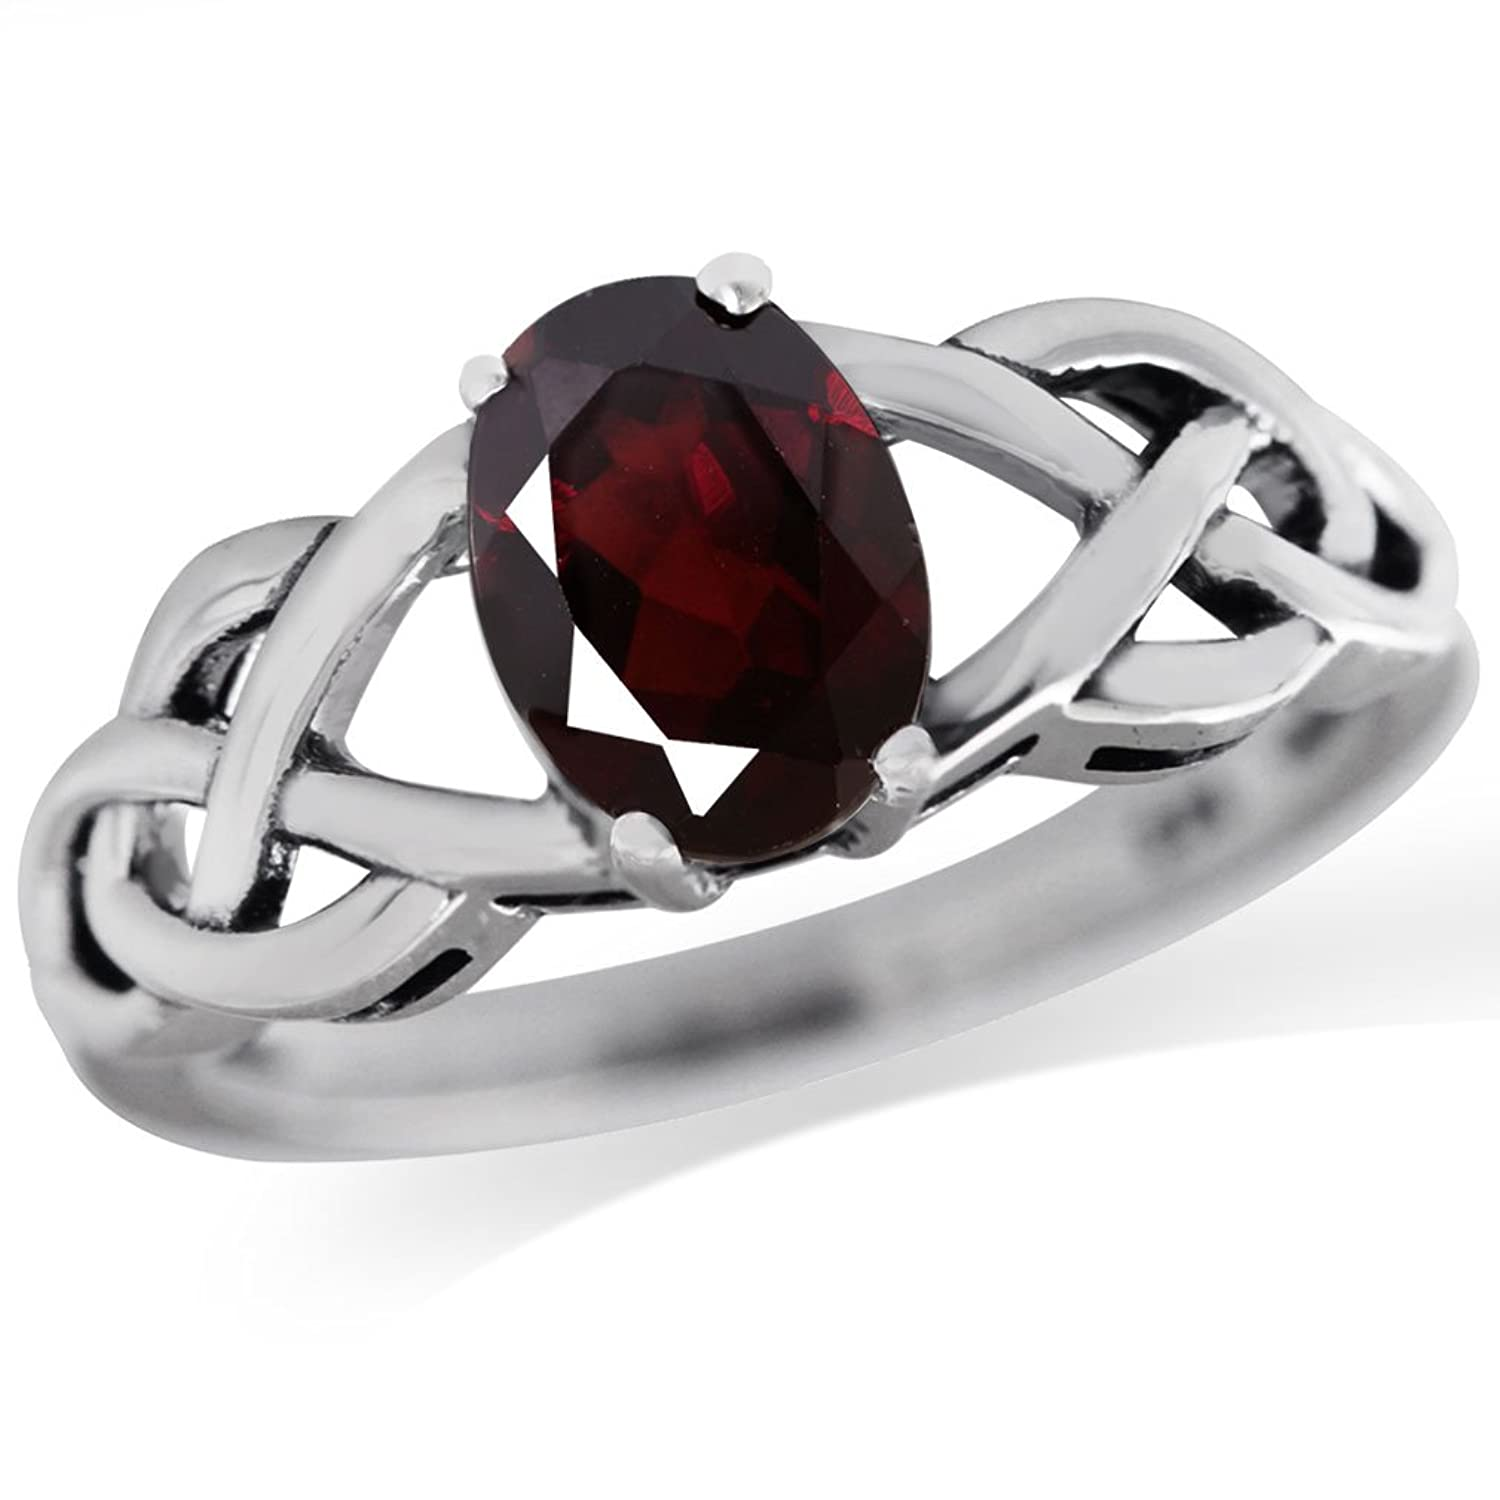 1.4ct. Natural Garnet 925 Sterling Silver Celtic Knot Solitaire Ring